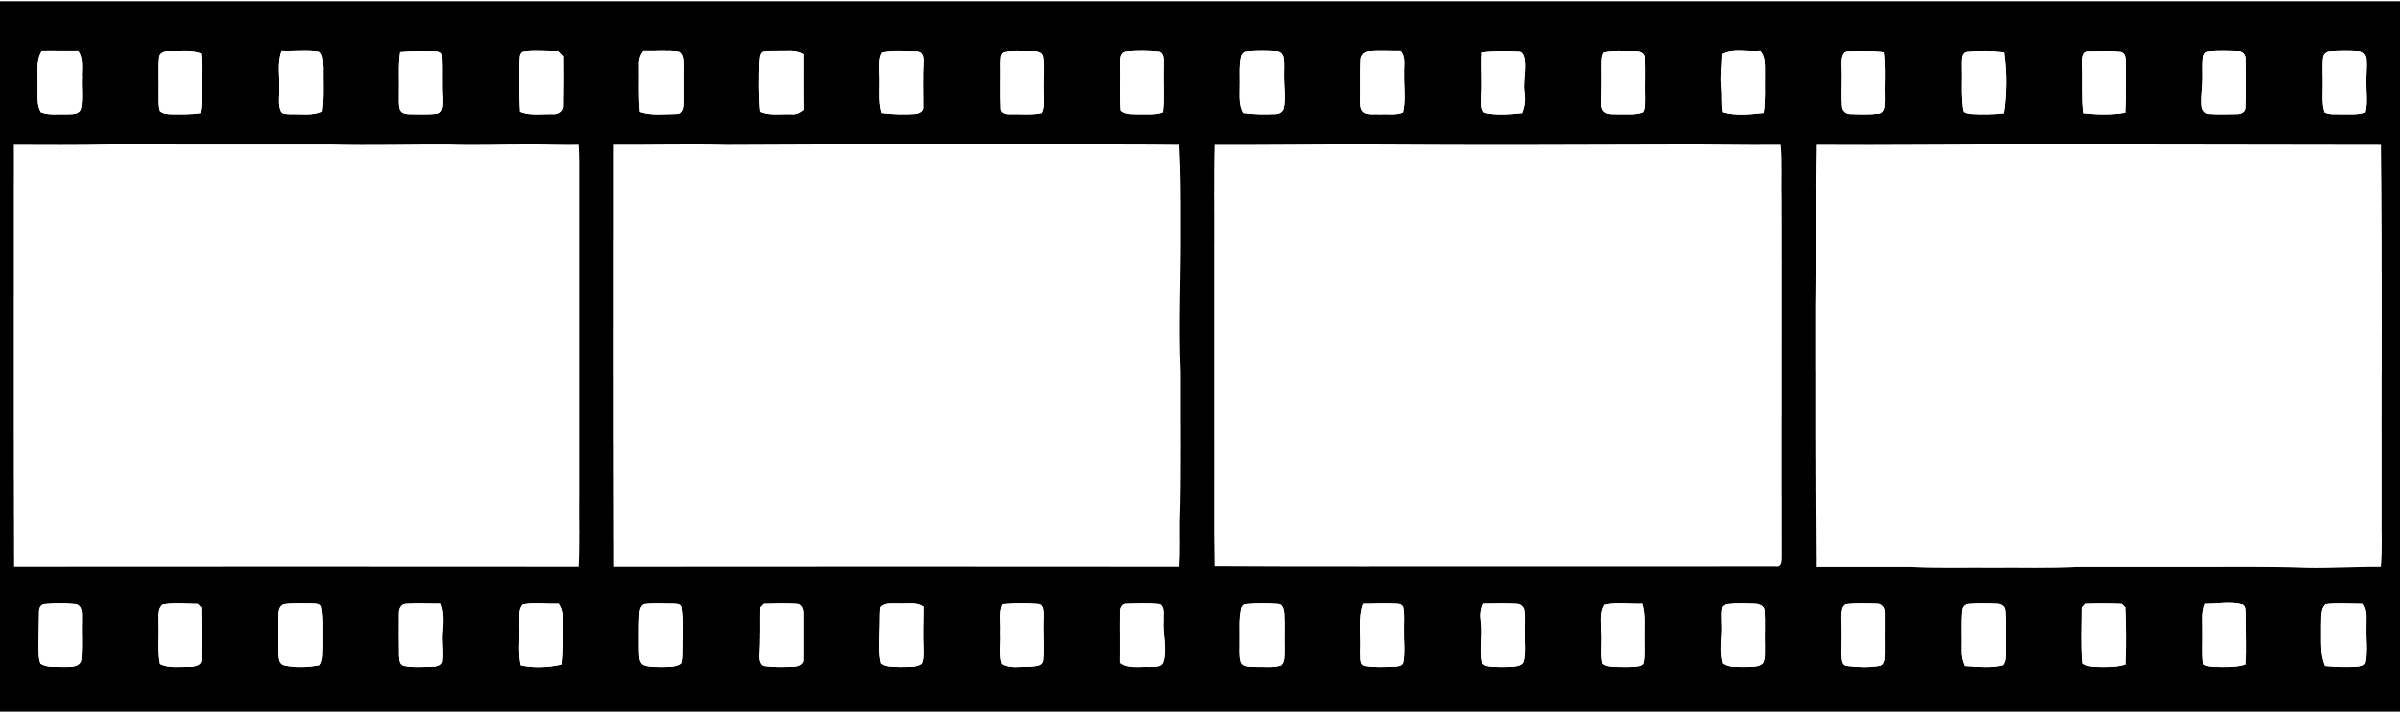 Movie film strip clipart clipartix 2